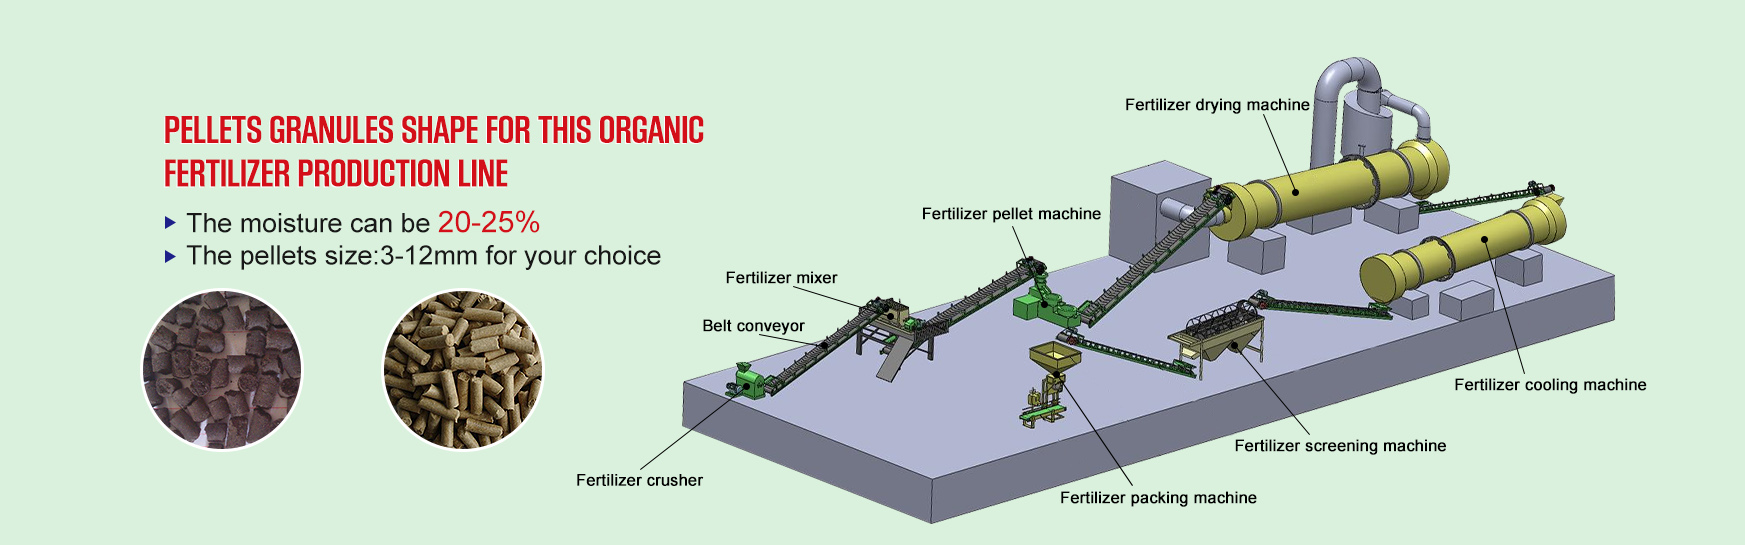 pellet fertilizer granules production line